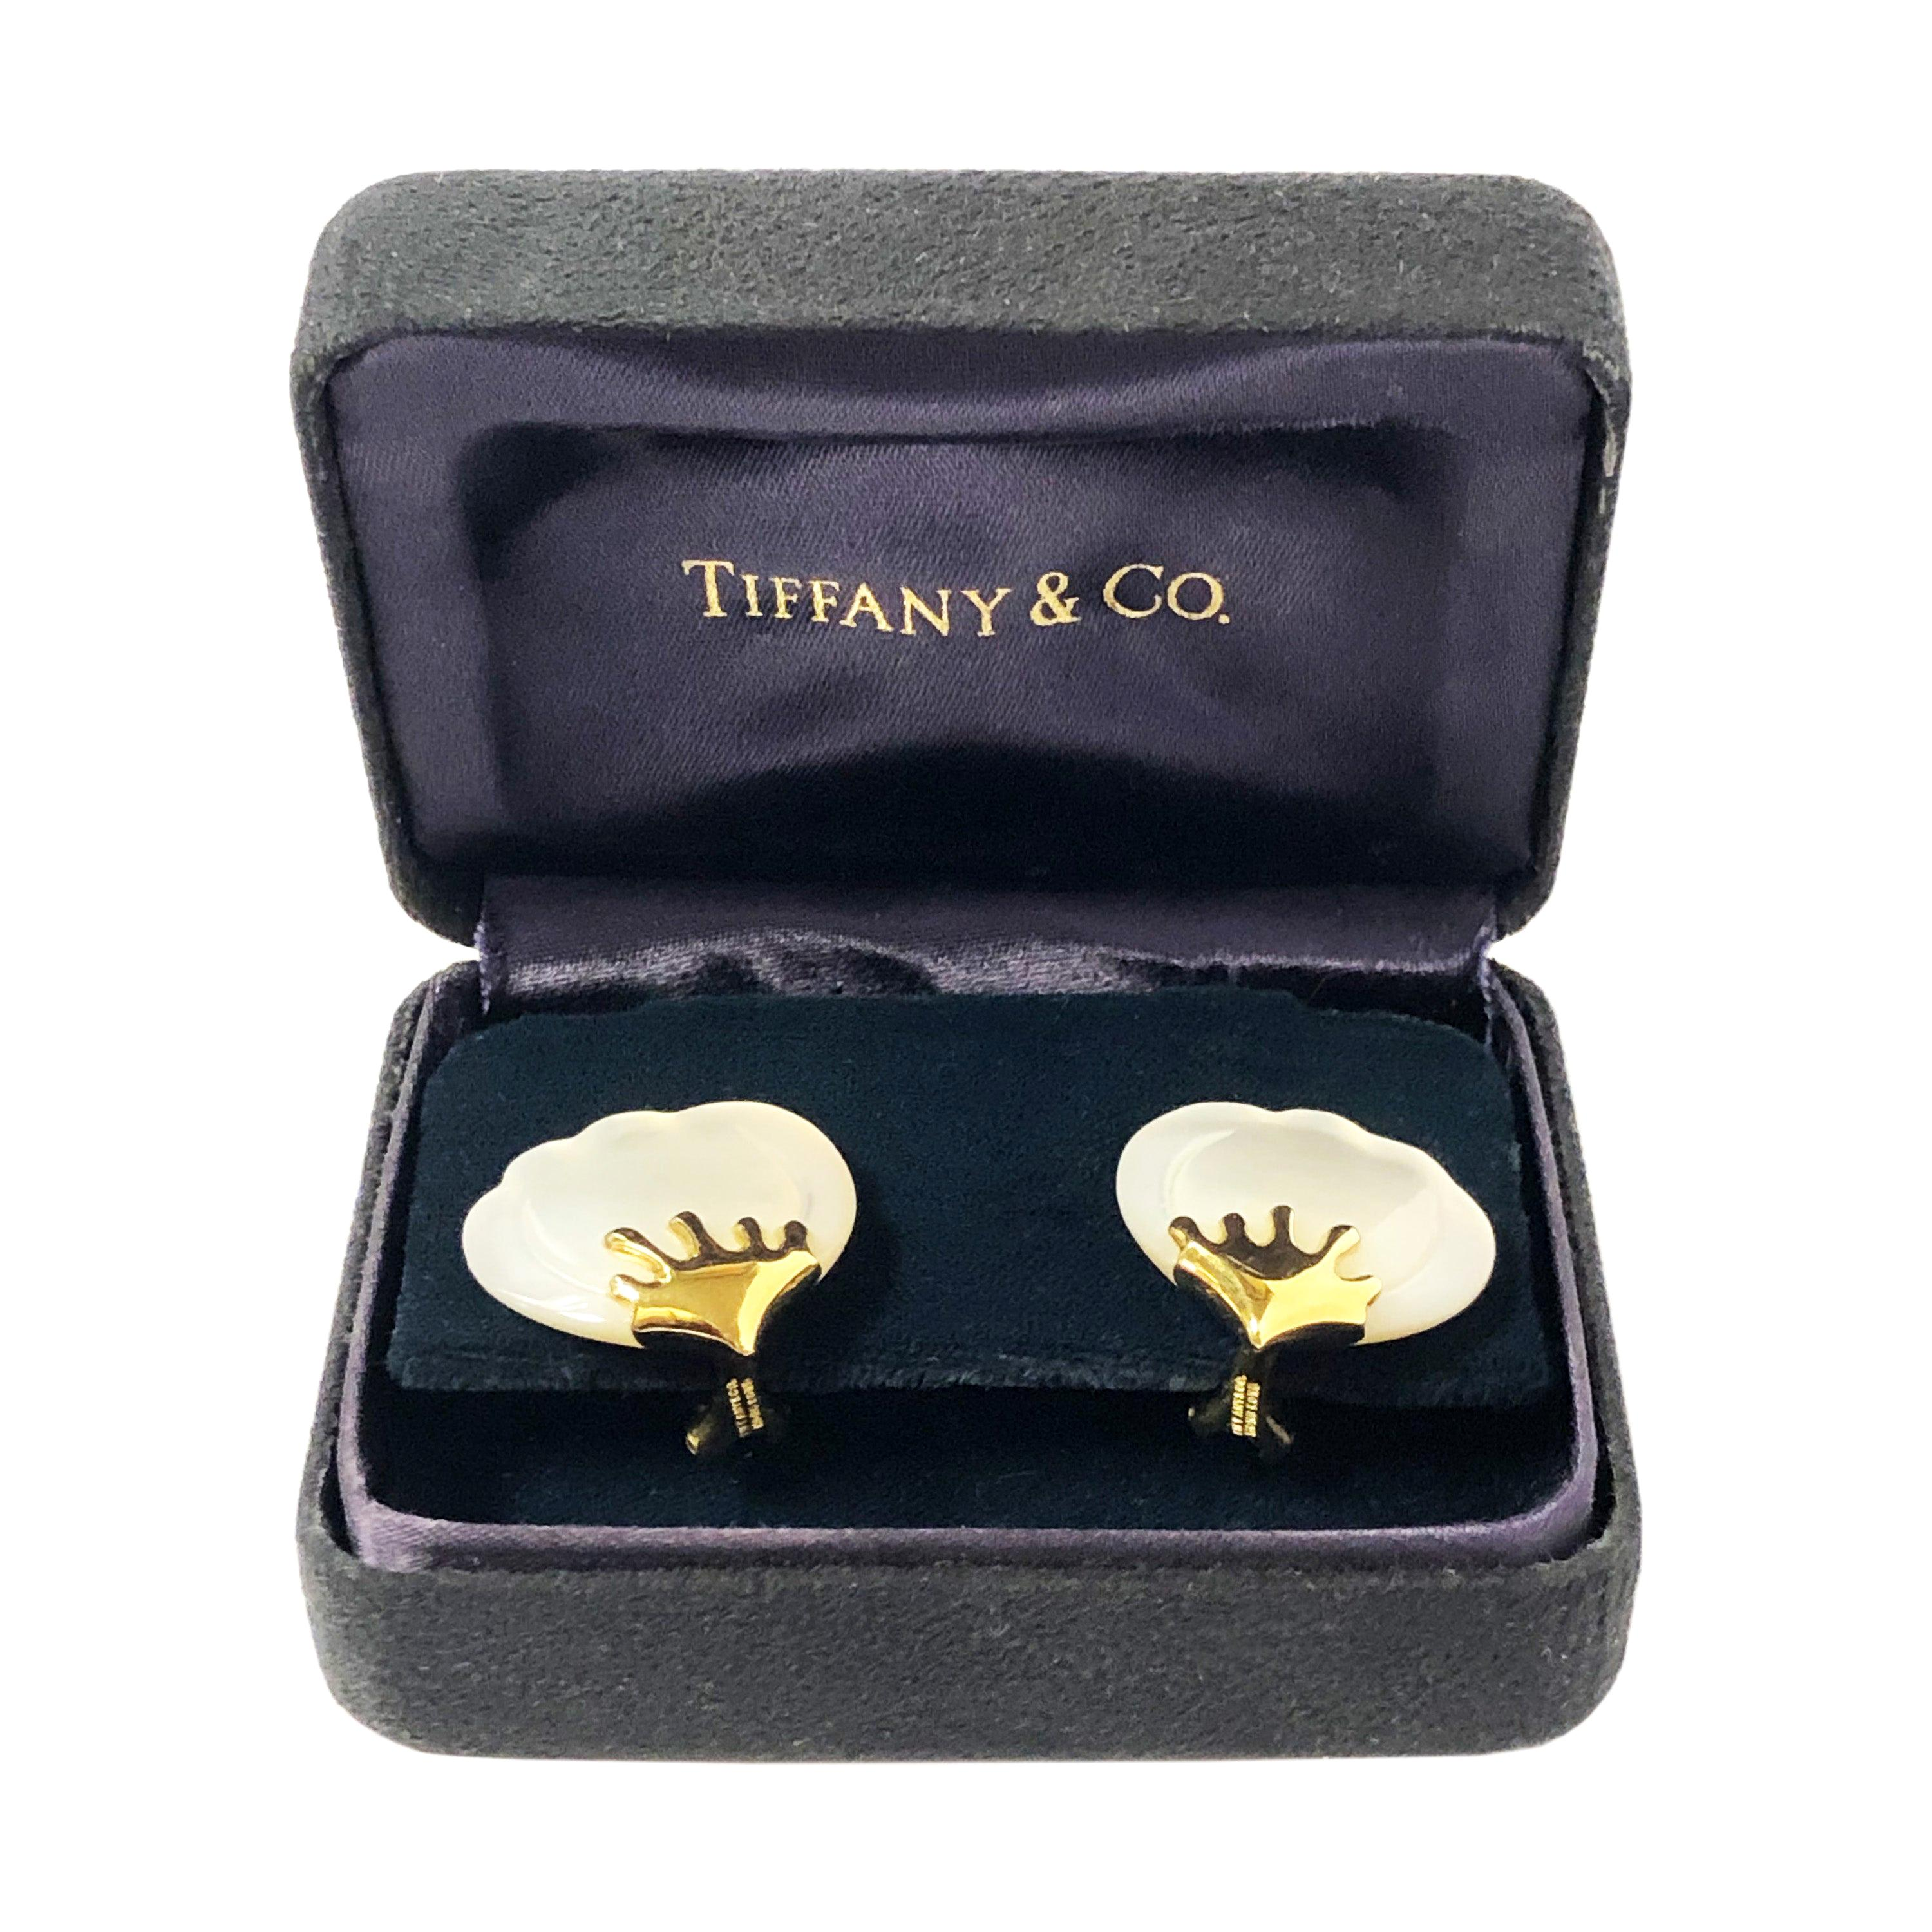 Tiffany & Co. Petal, Gold and Mother of Pearl Earrings